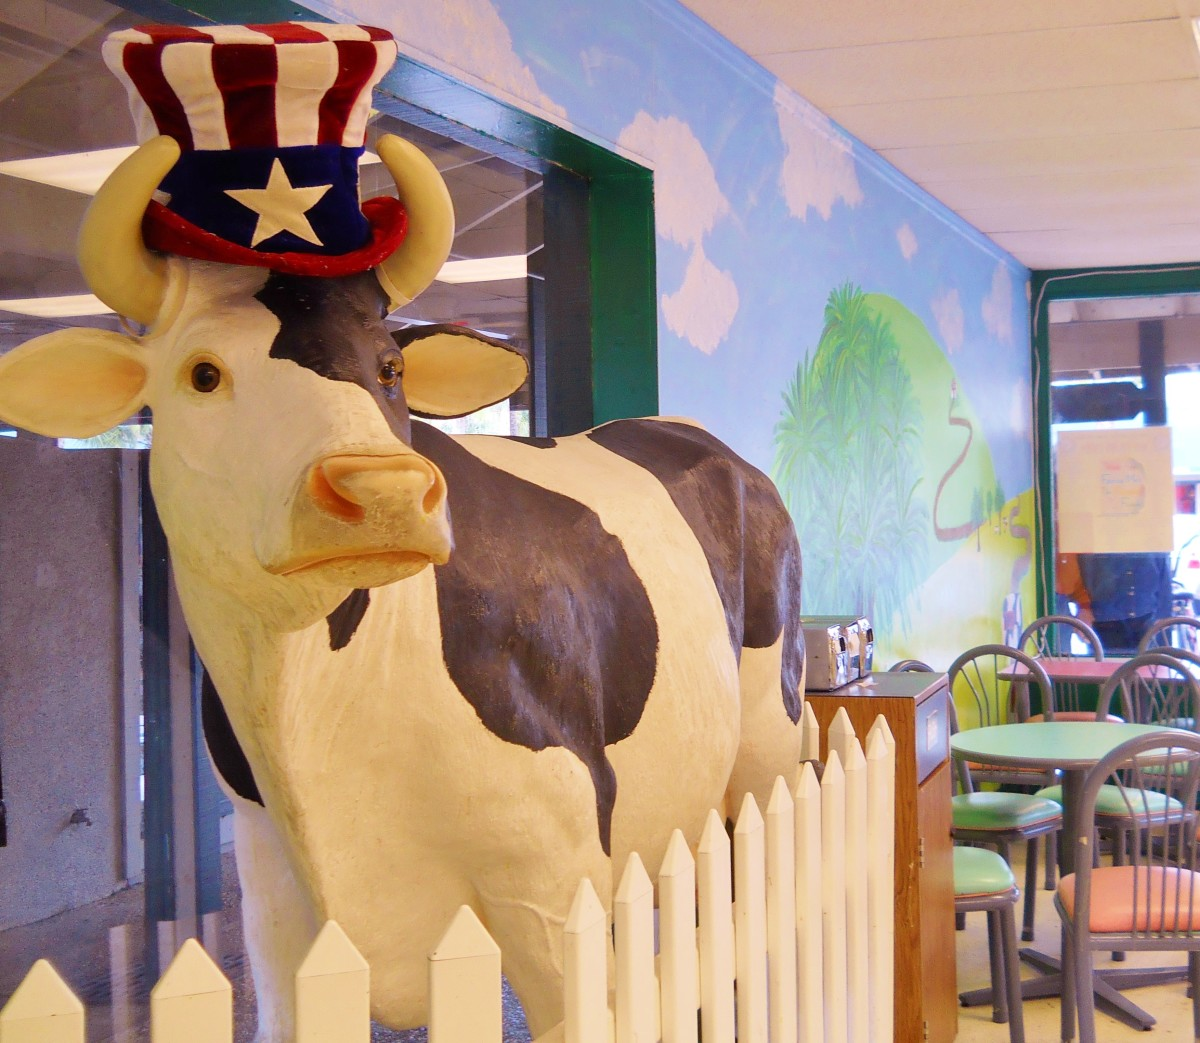 The Frozen Moo has a life size statue of a cow that moos when she feels like welcoming patrons to this colorful ice cream parlor in Coligny Plaza.